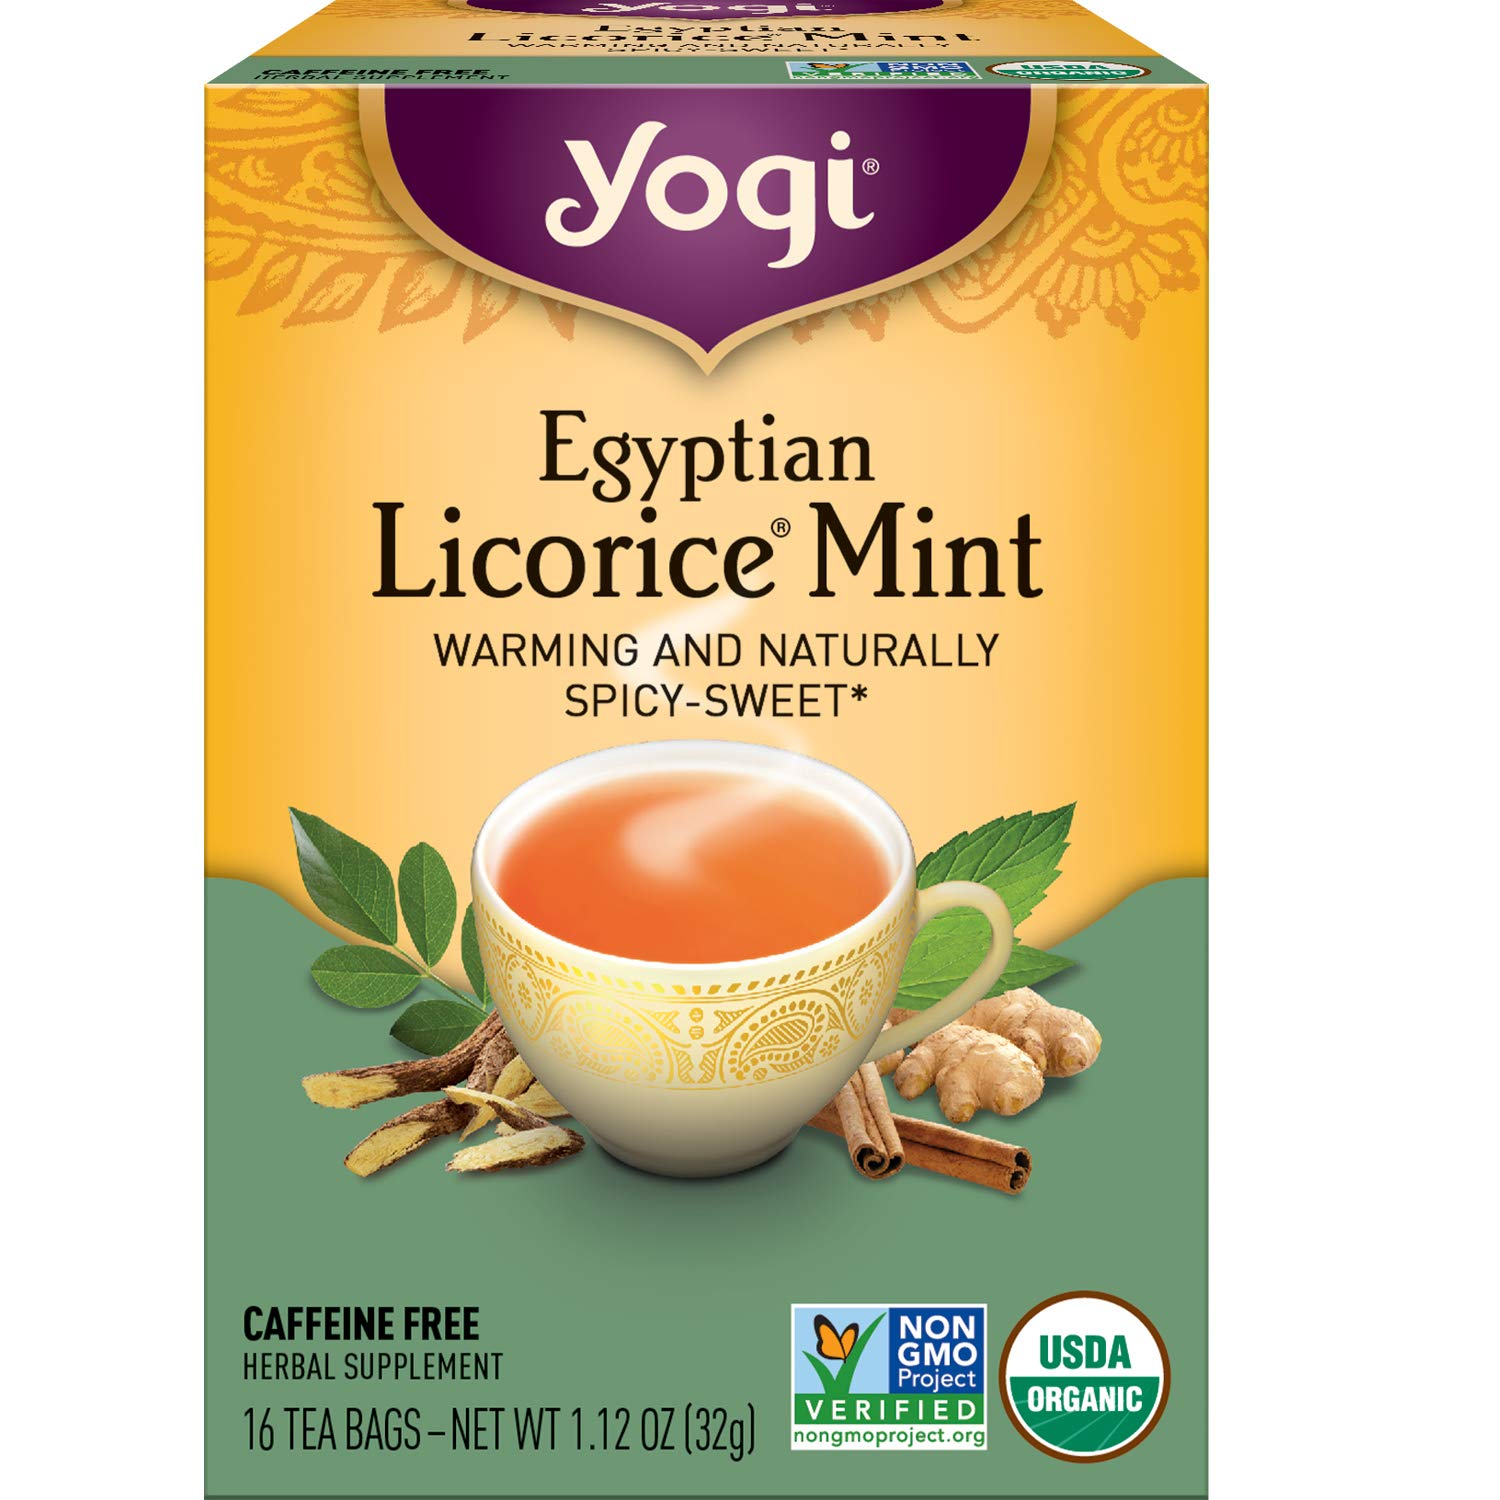 Yogi Tea - Egyptian Licorice Mint (4 Pack) - Warming and Naturally Spicy Sweet - 64 Tea Bags